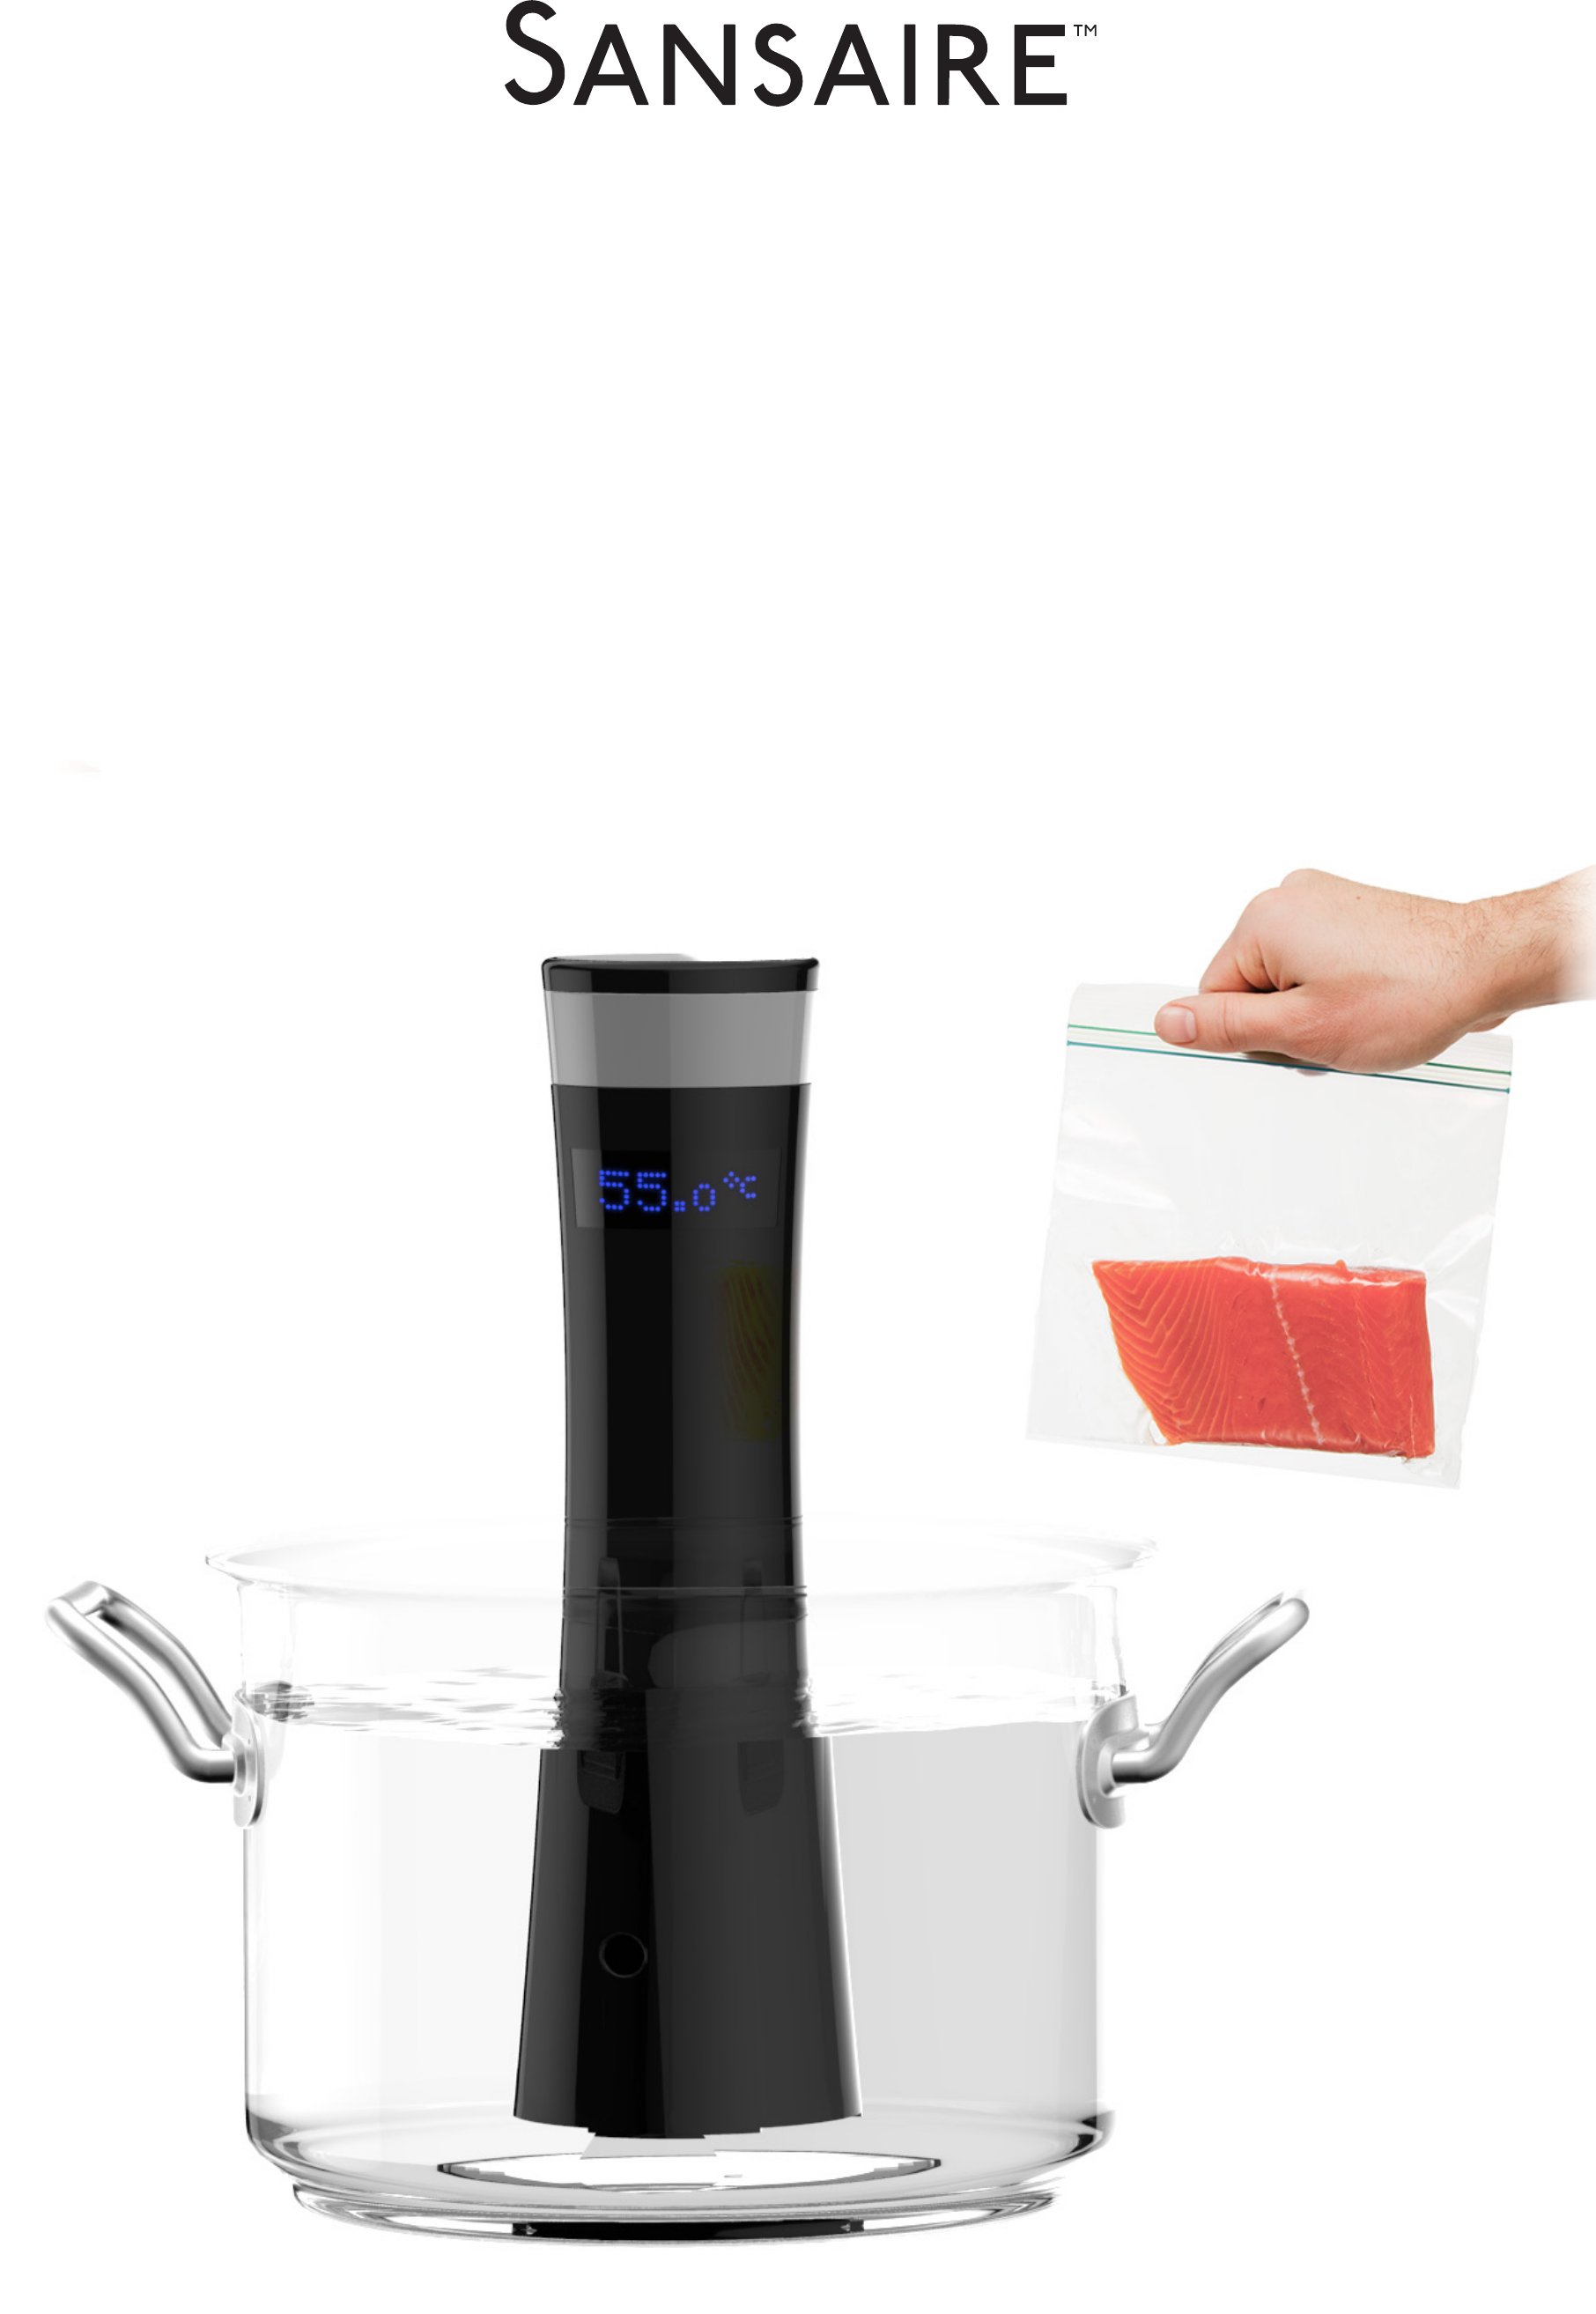 Sous vide cooking guide free download for Cuisine sous vide